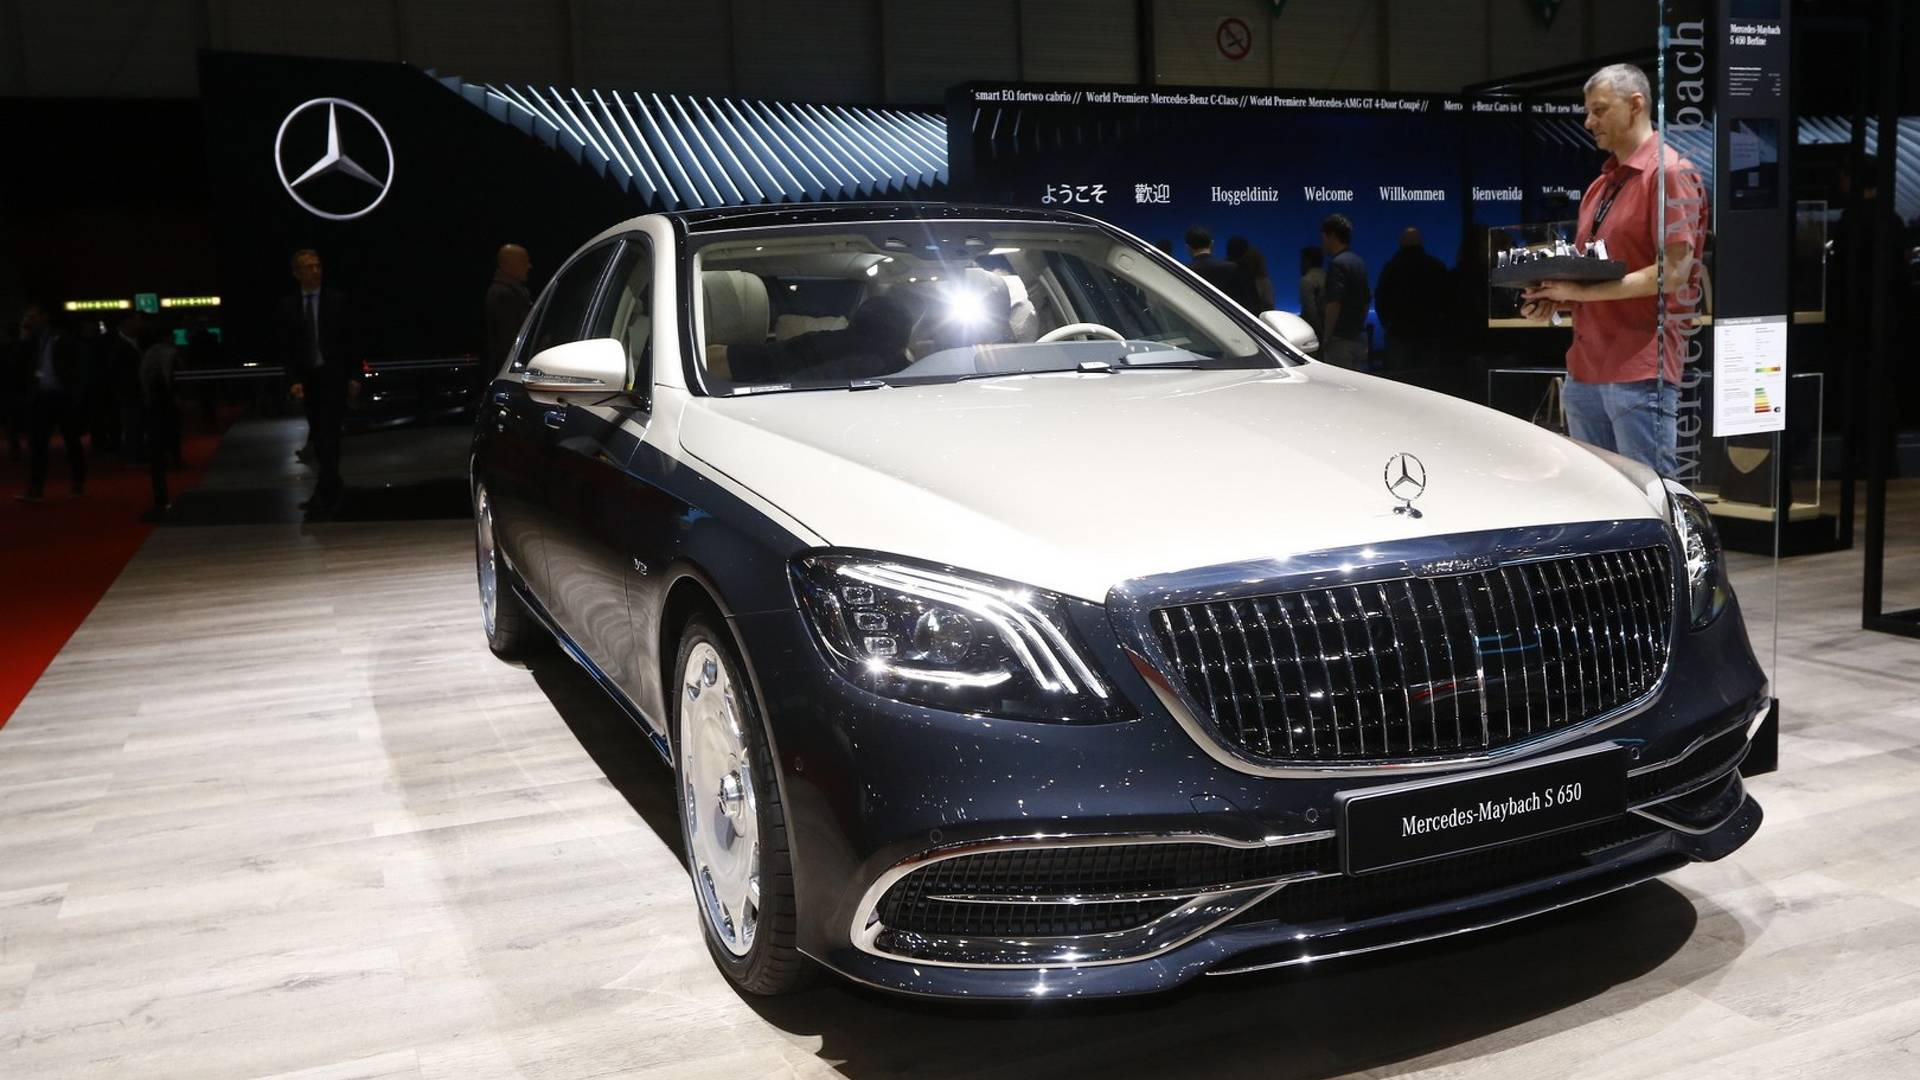 mercedes maybach s class live from geneva motor show. Black Bedroom Furniture Sets. Home Design Ideas